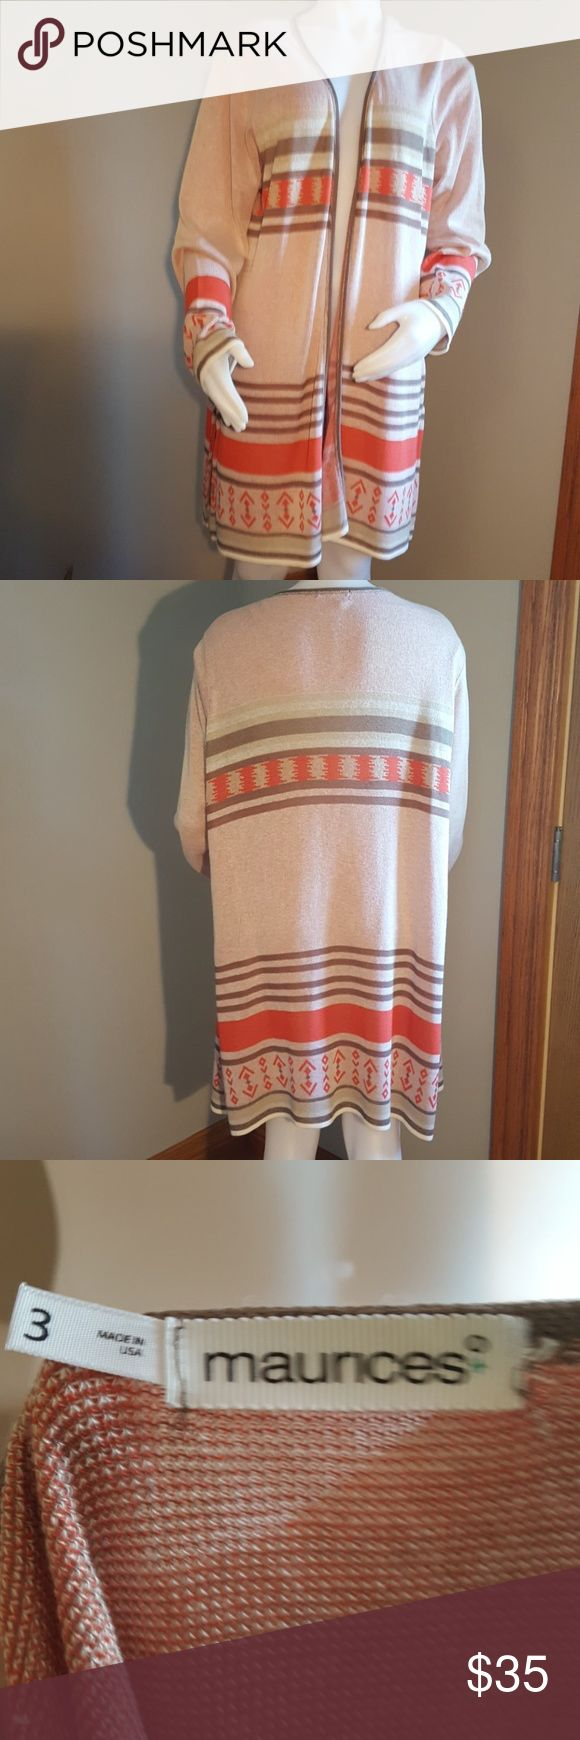 Maurices cardigan Tribal design cardigan, knee length, but light in weight. Maurices Sweaters Shrugs & Ponchos